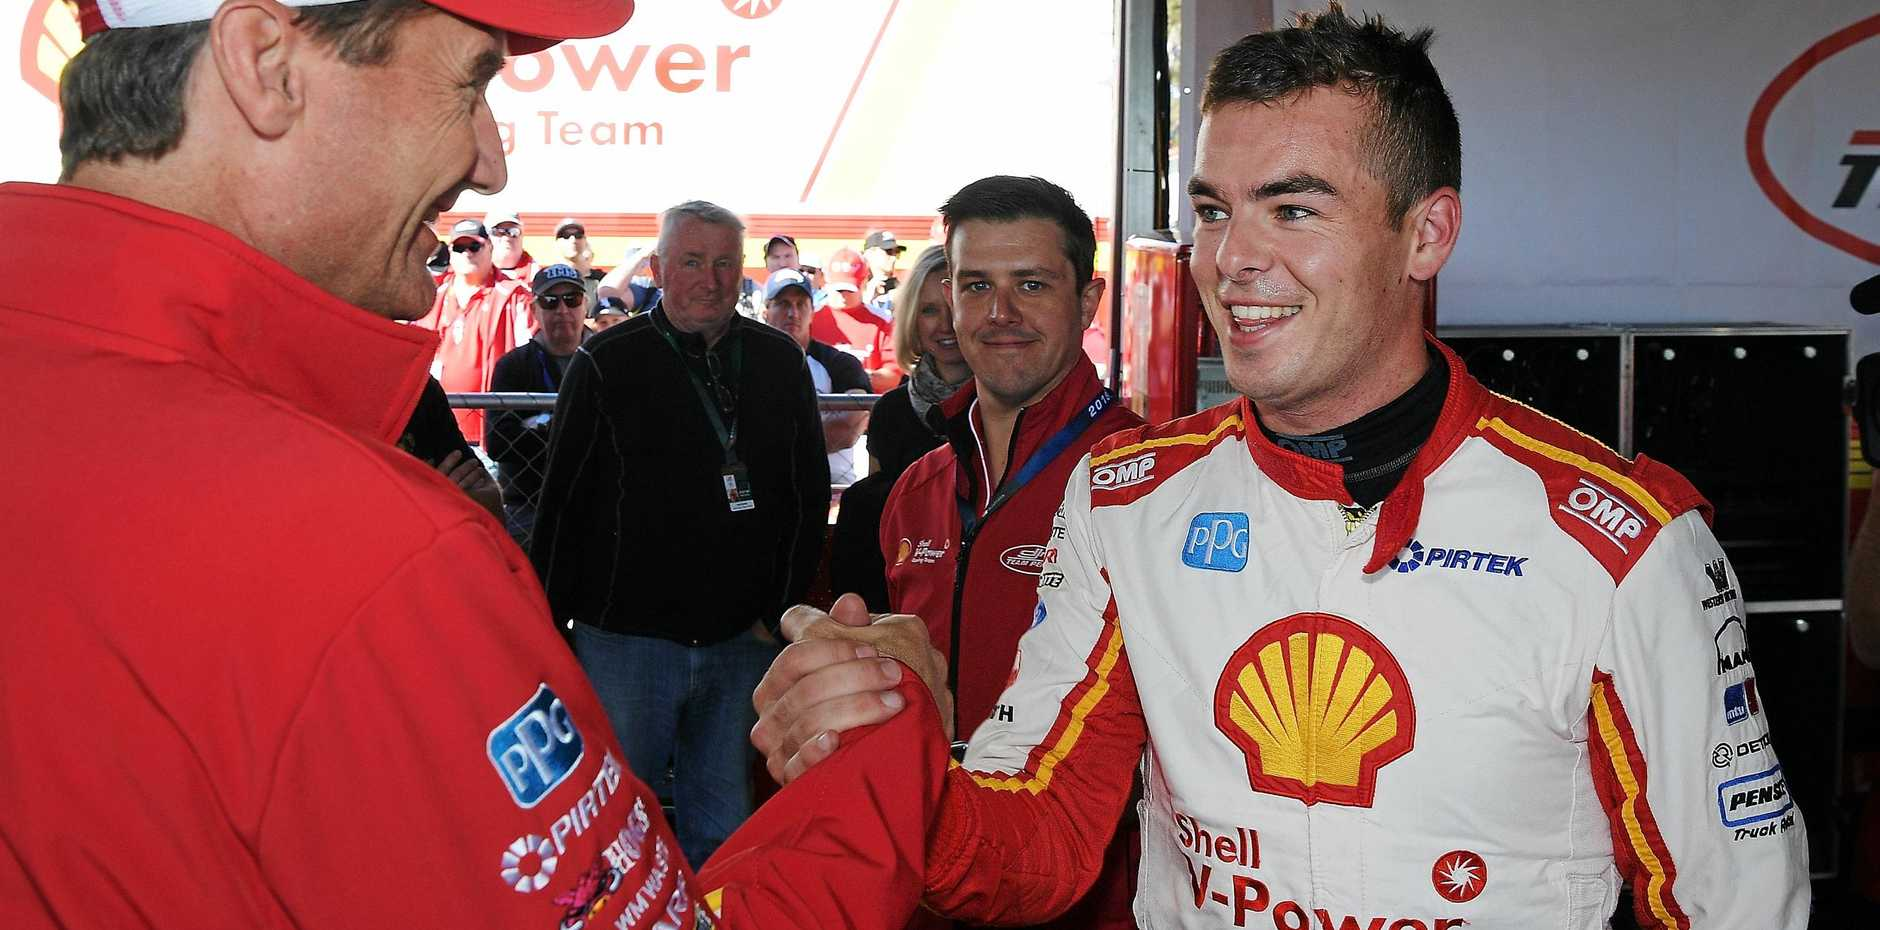 Penske Racing president Tim Cindric congratulates Scott McLaughlin on taking poll during qualifying for race 19 of the Supercars Ipswich SuperSprint. Picture: Daniel Kalisz/Getty